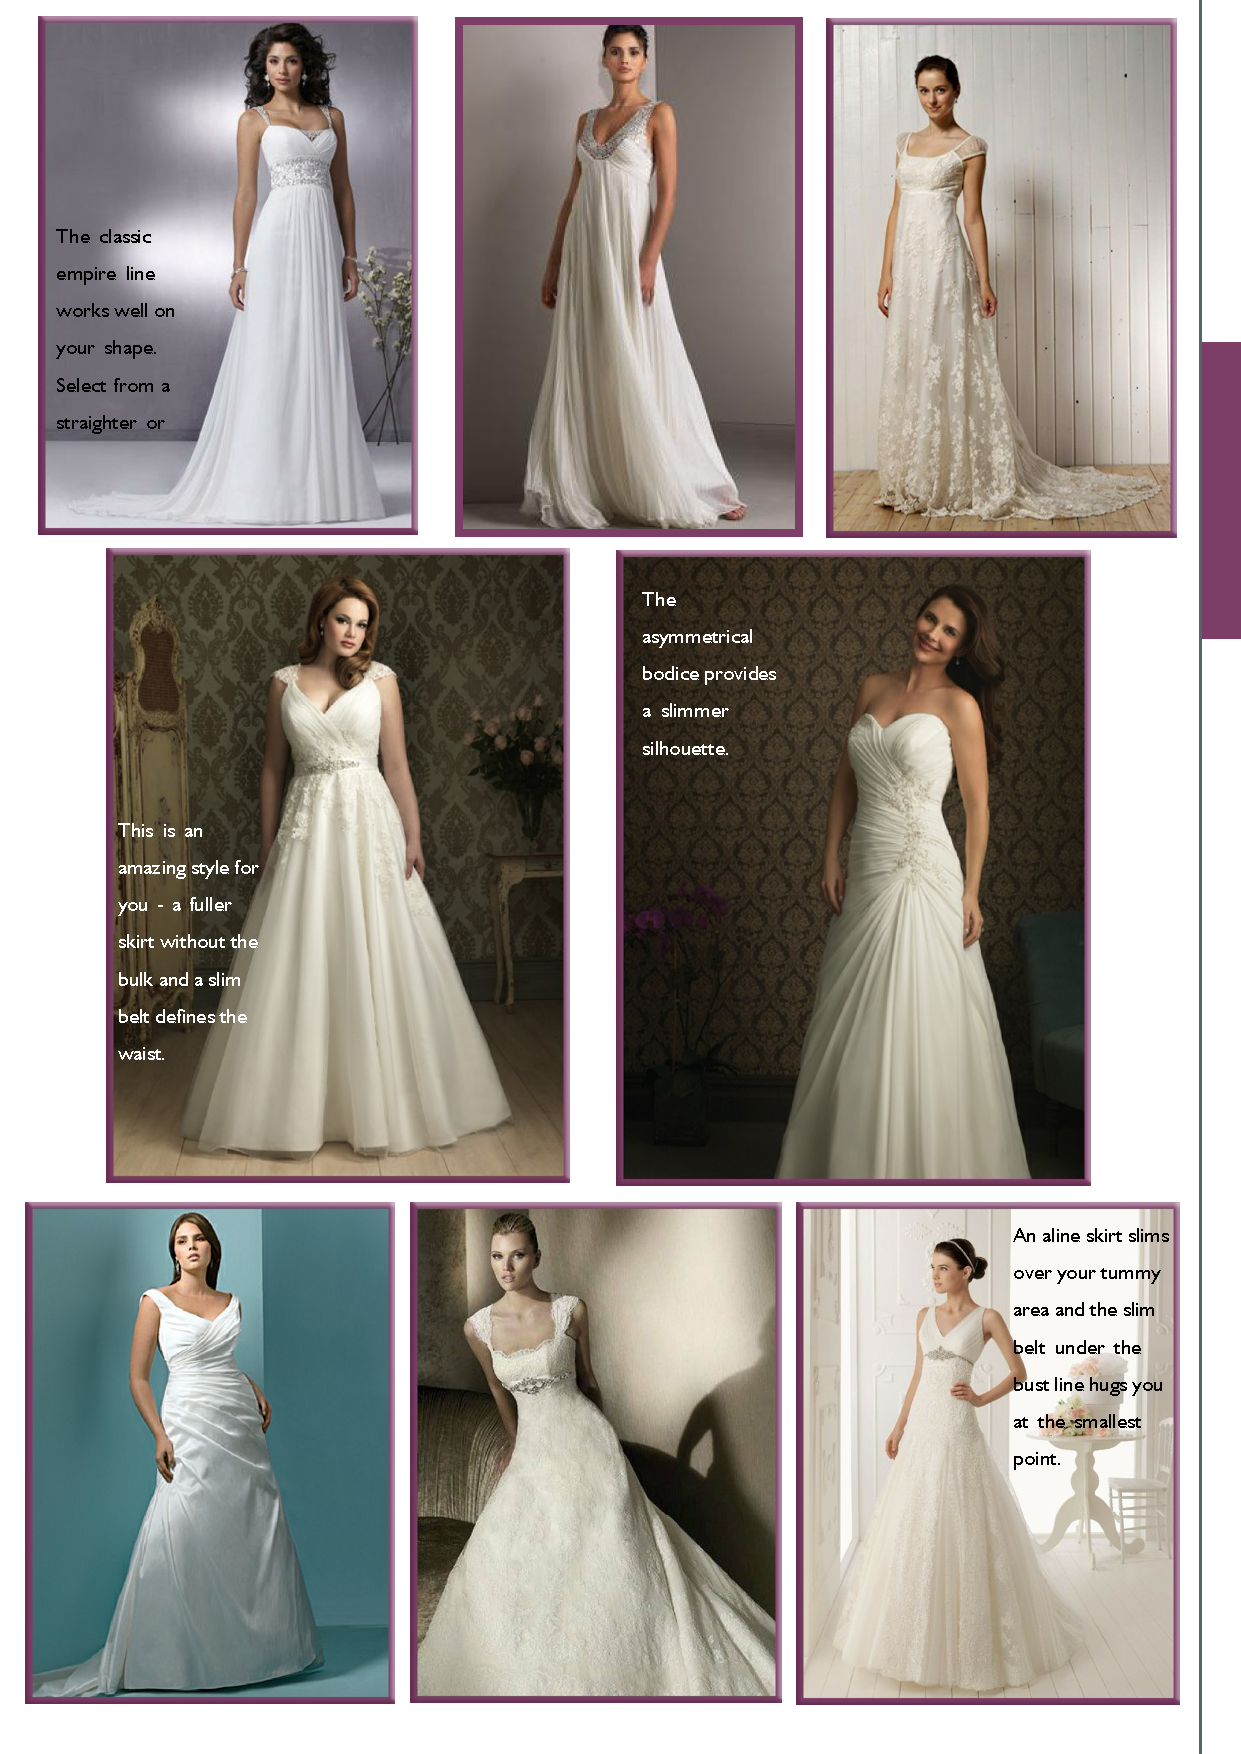 Isabella apple body shape bridal gown suggestions. | Gorgeous Gowns ...